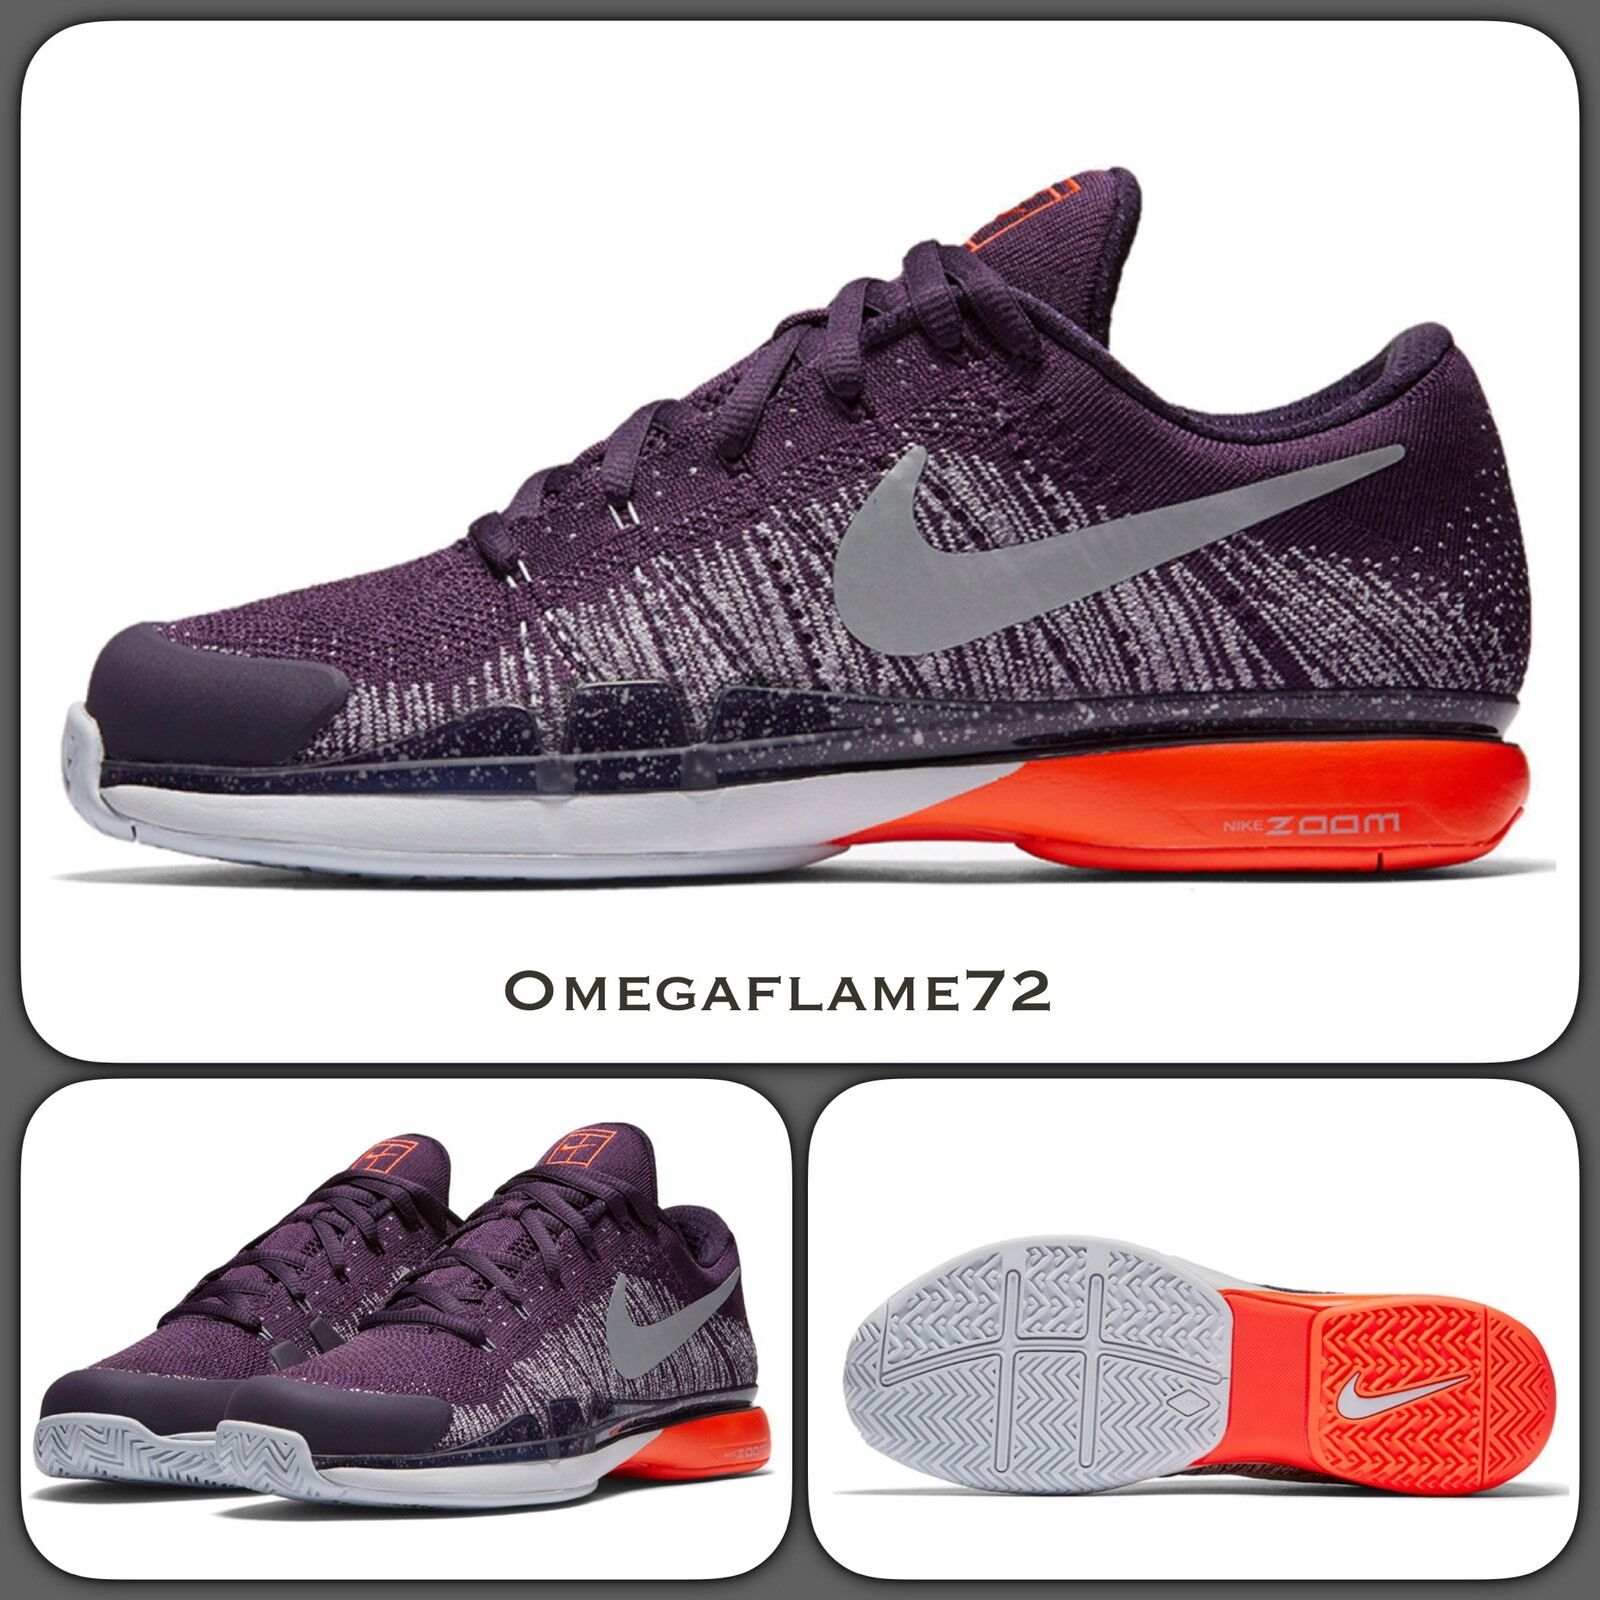 Nike Federer Zoom Vapor 9.5 Tour Flyknit 885725-500 UK 7, 7, 7, EU 41, USA 8 50995a